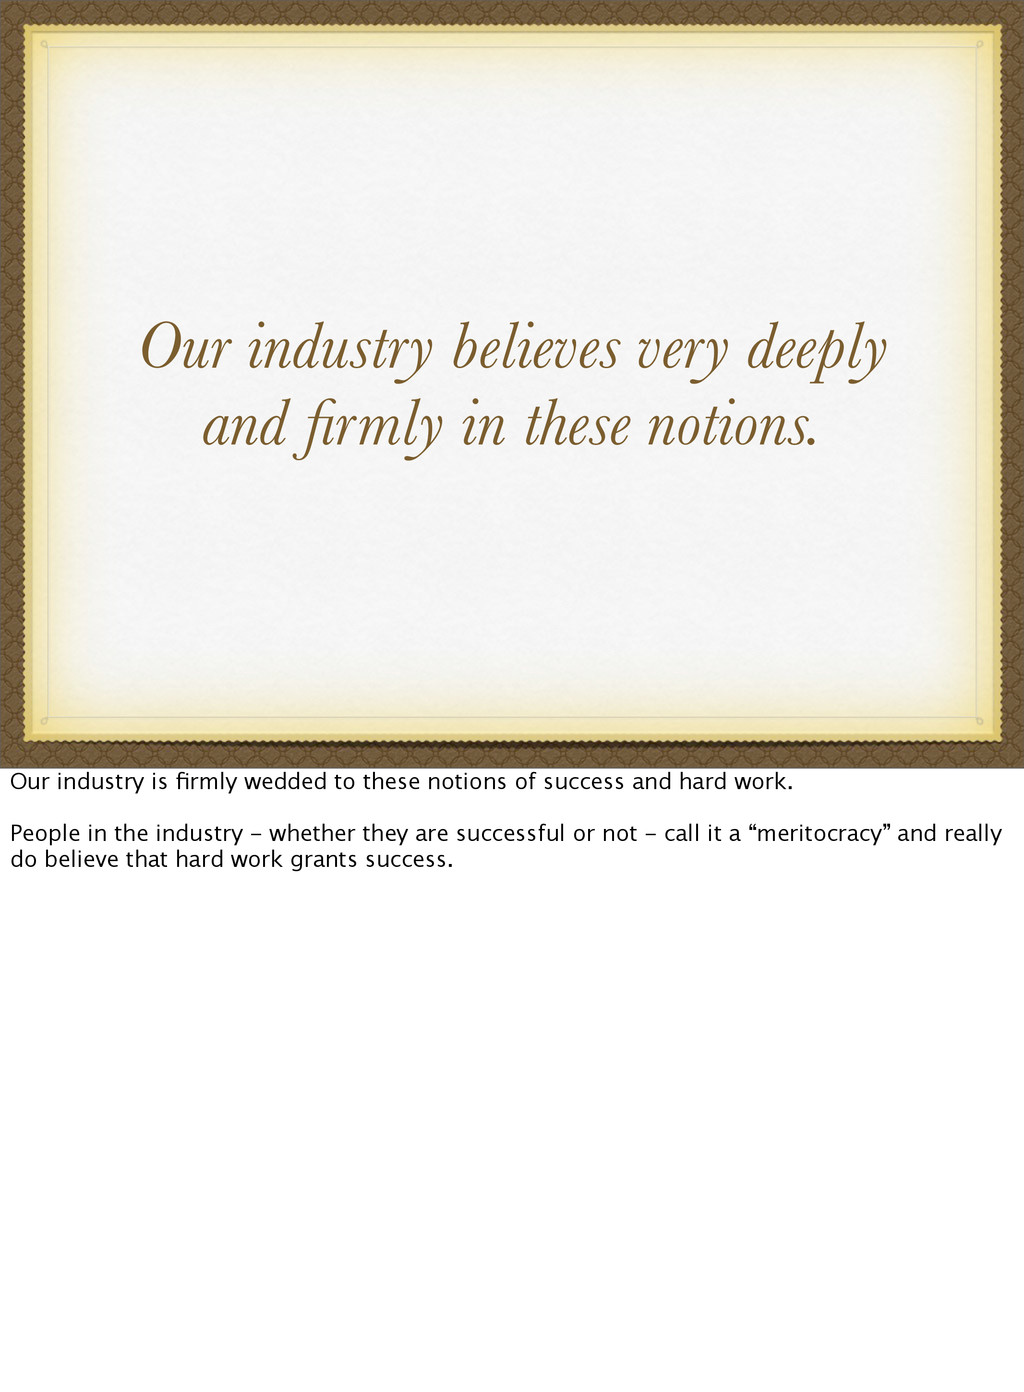 Our industry believes very deeply and firmly in ...